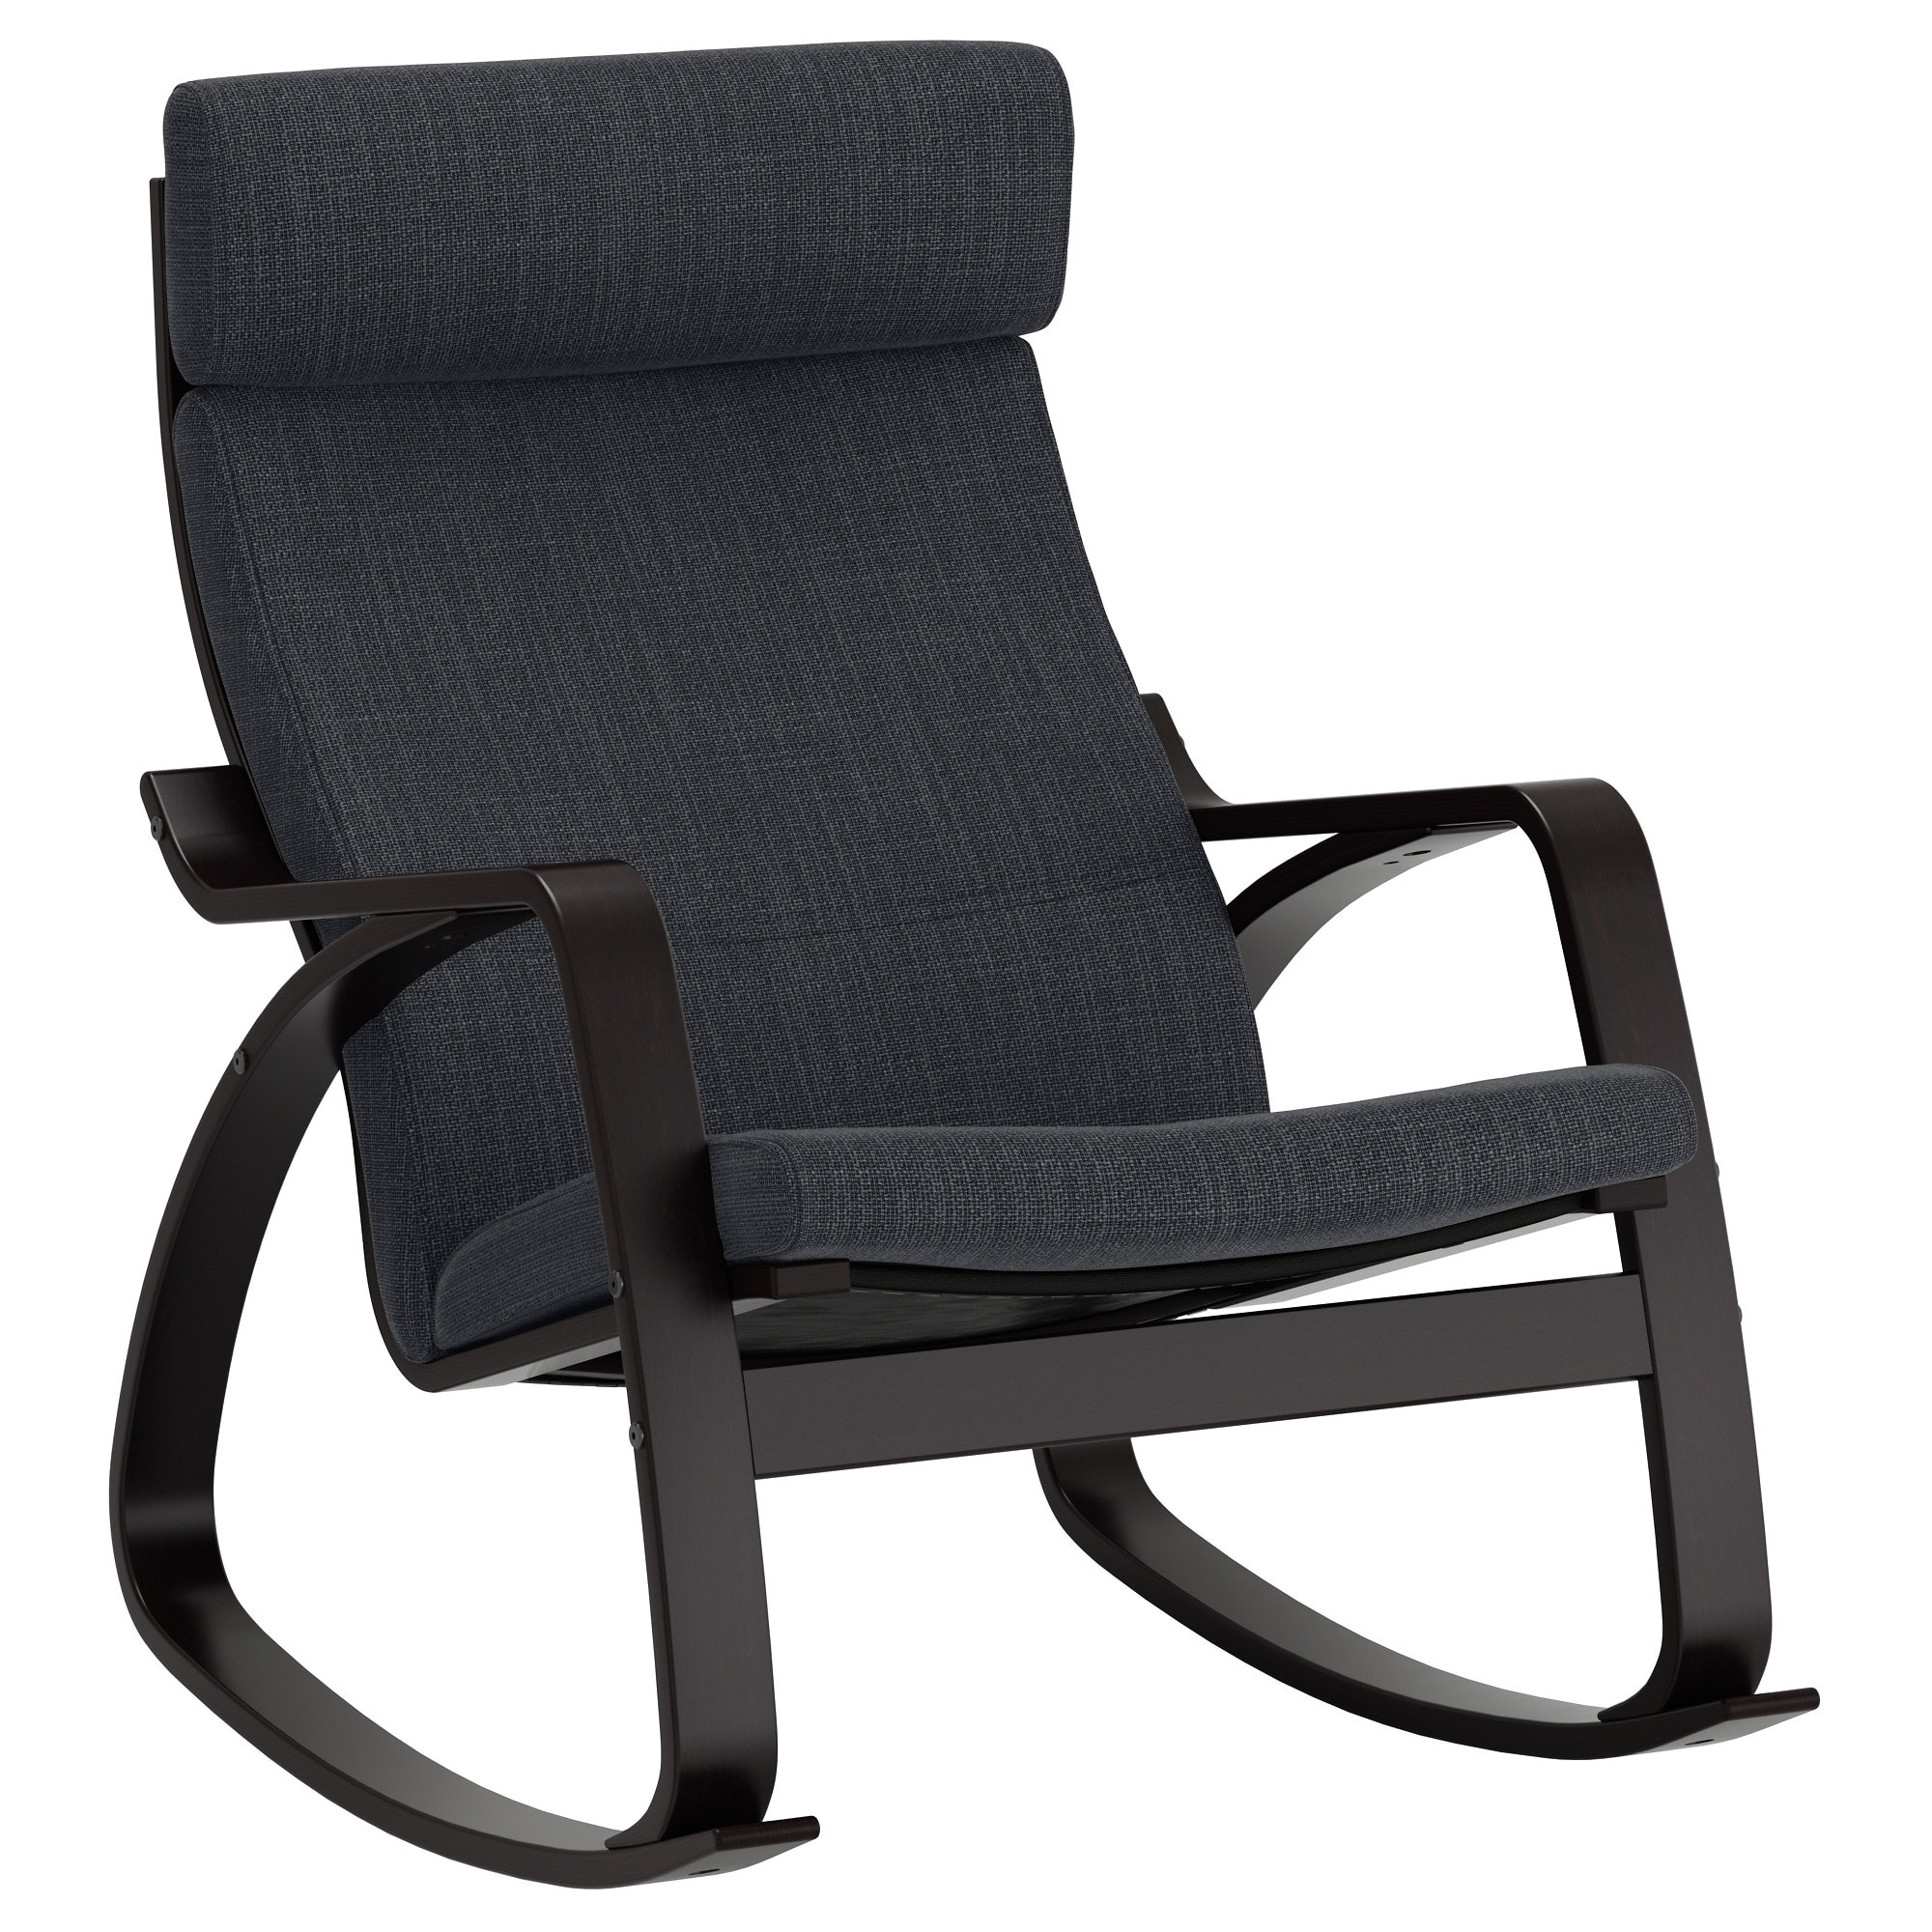 Ikea Rocking Chairs Inside 2019 Poäng Rocking Chair Black Brown/hillared Anthracite – Ikea (View 8 of 20)